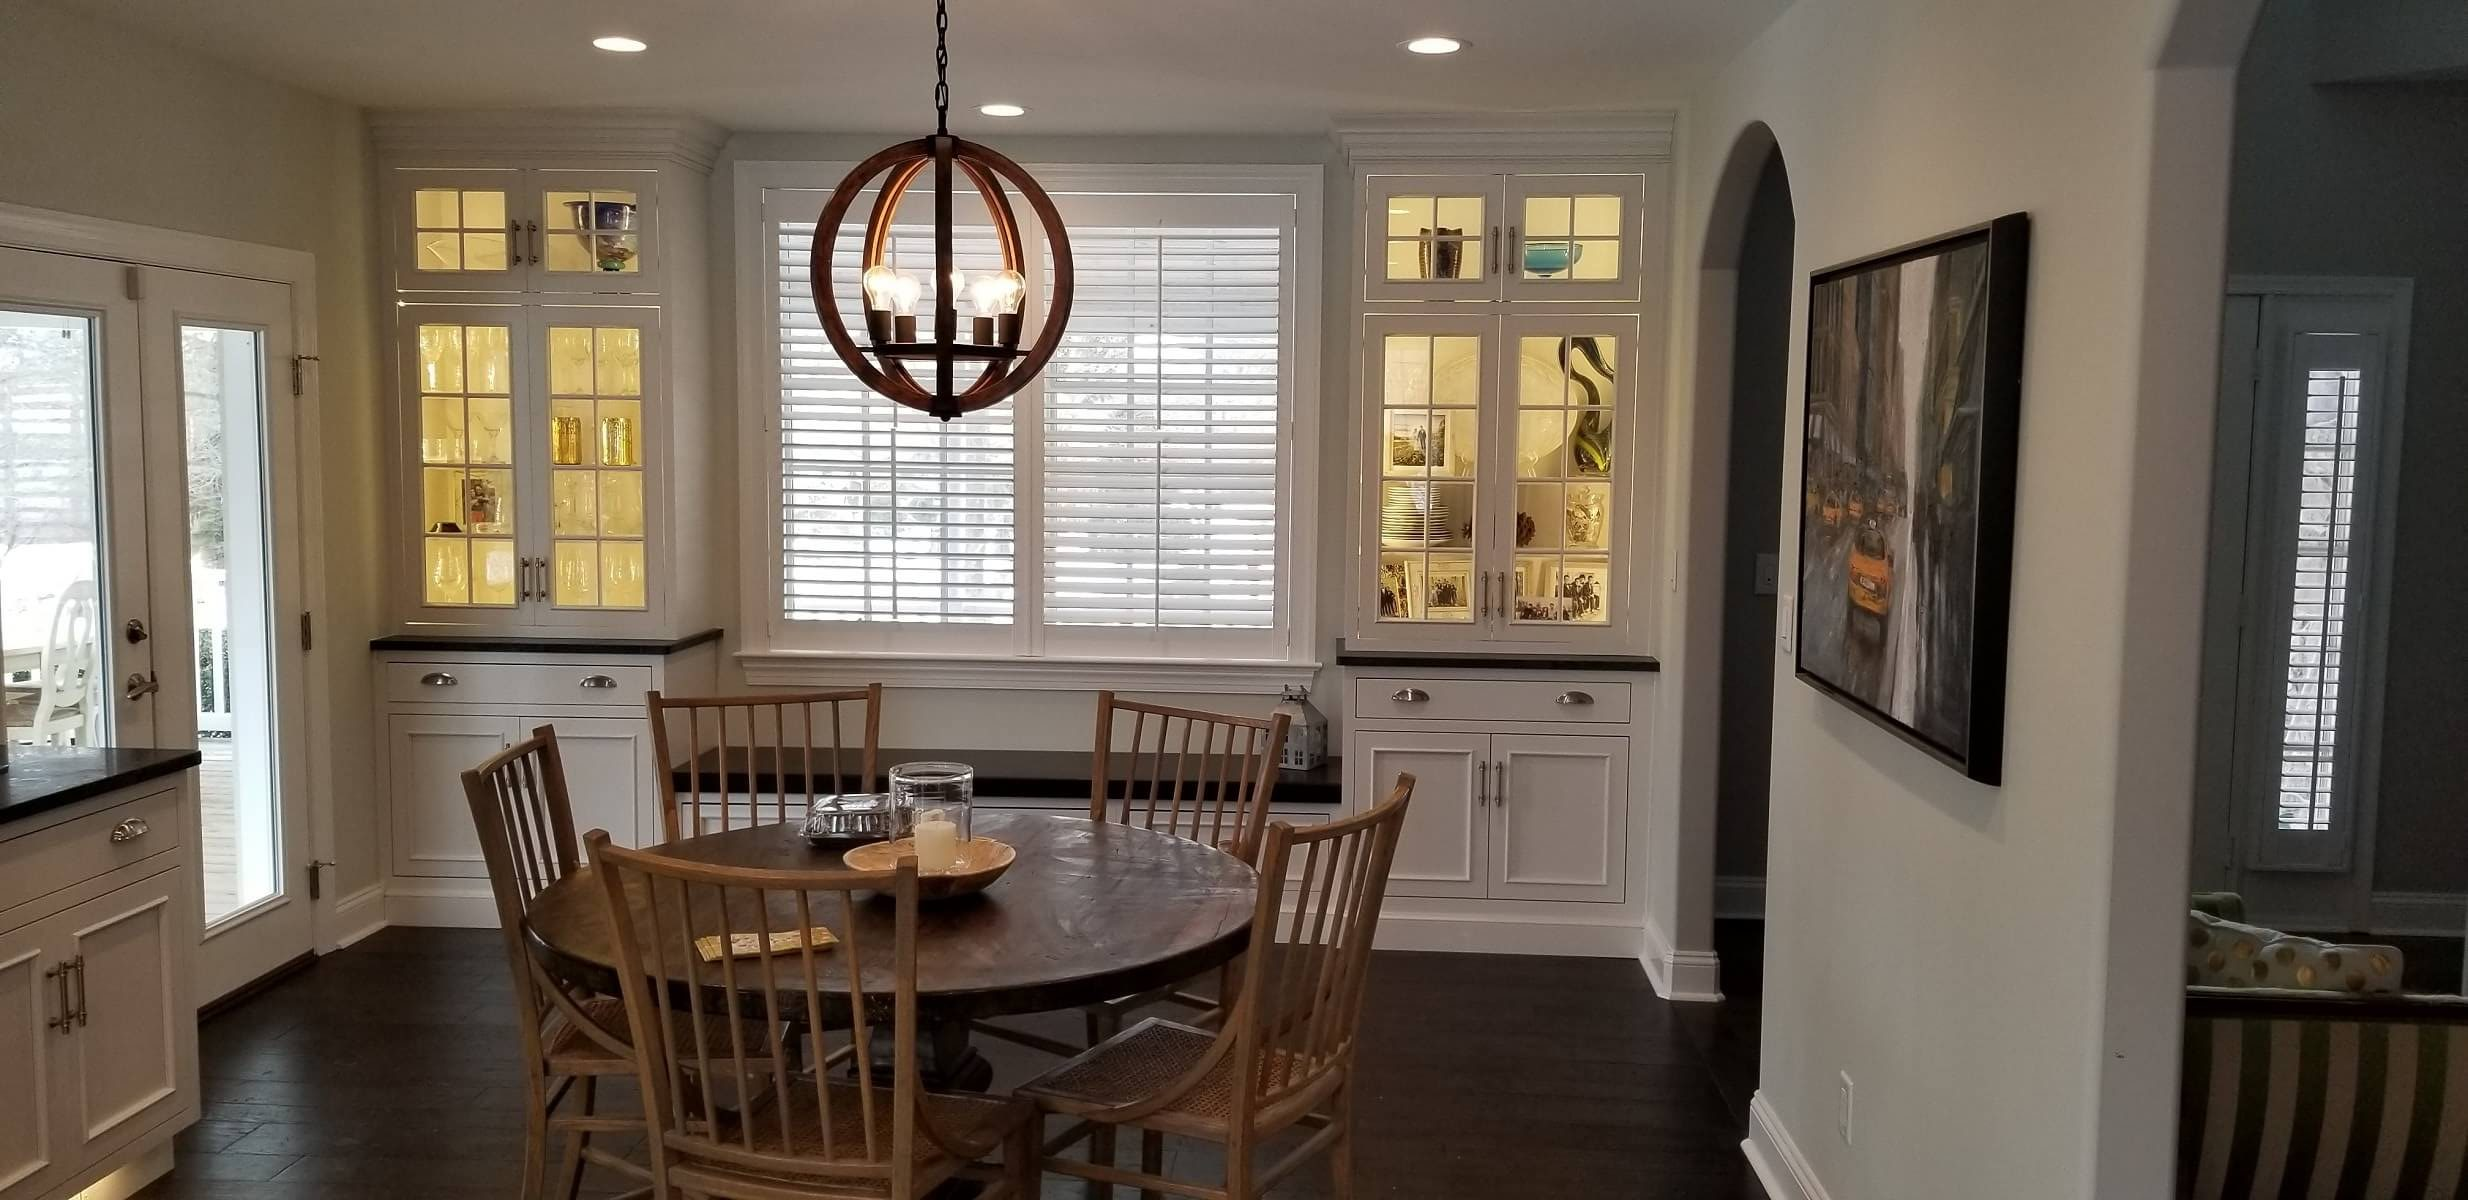 Eat in kitchen with glass door cabinets and window bench